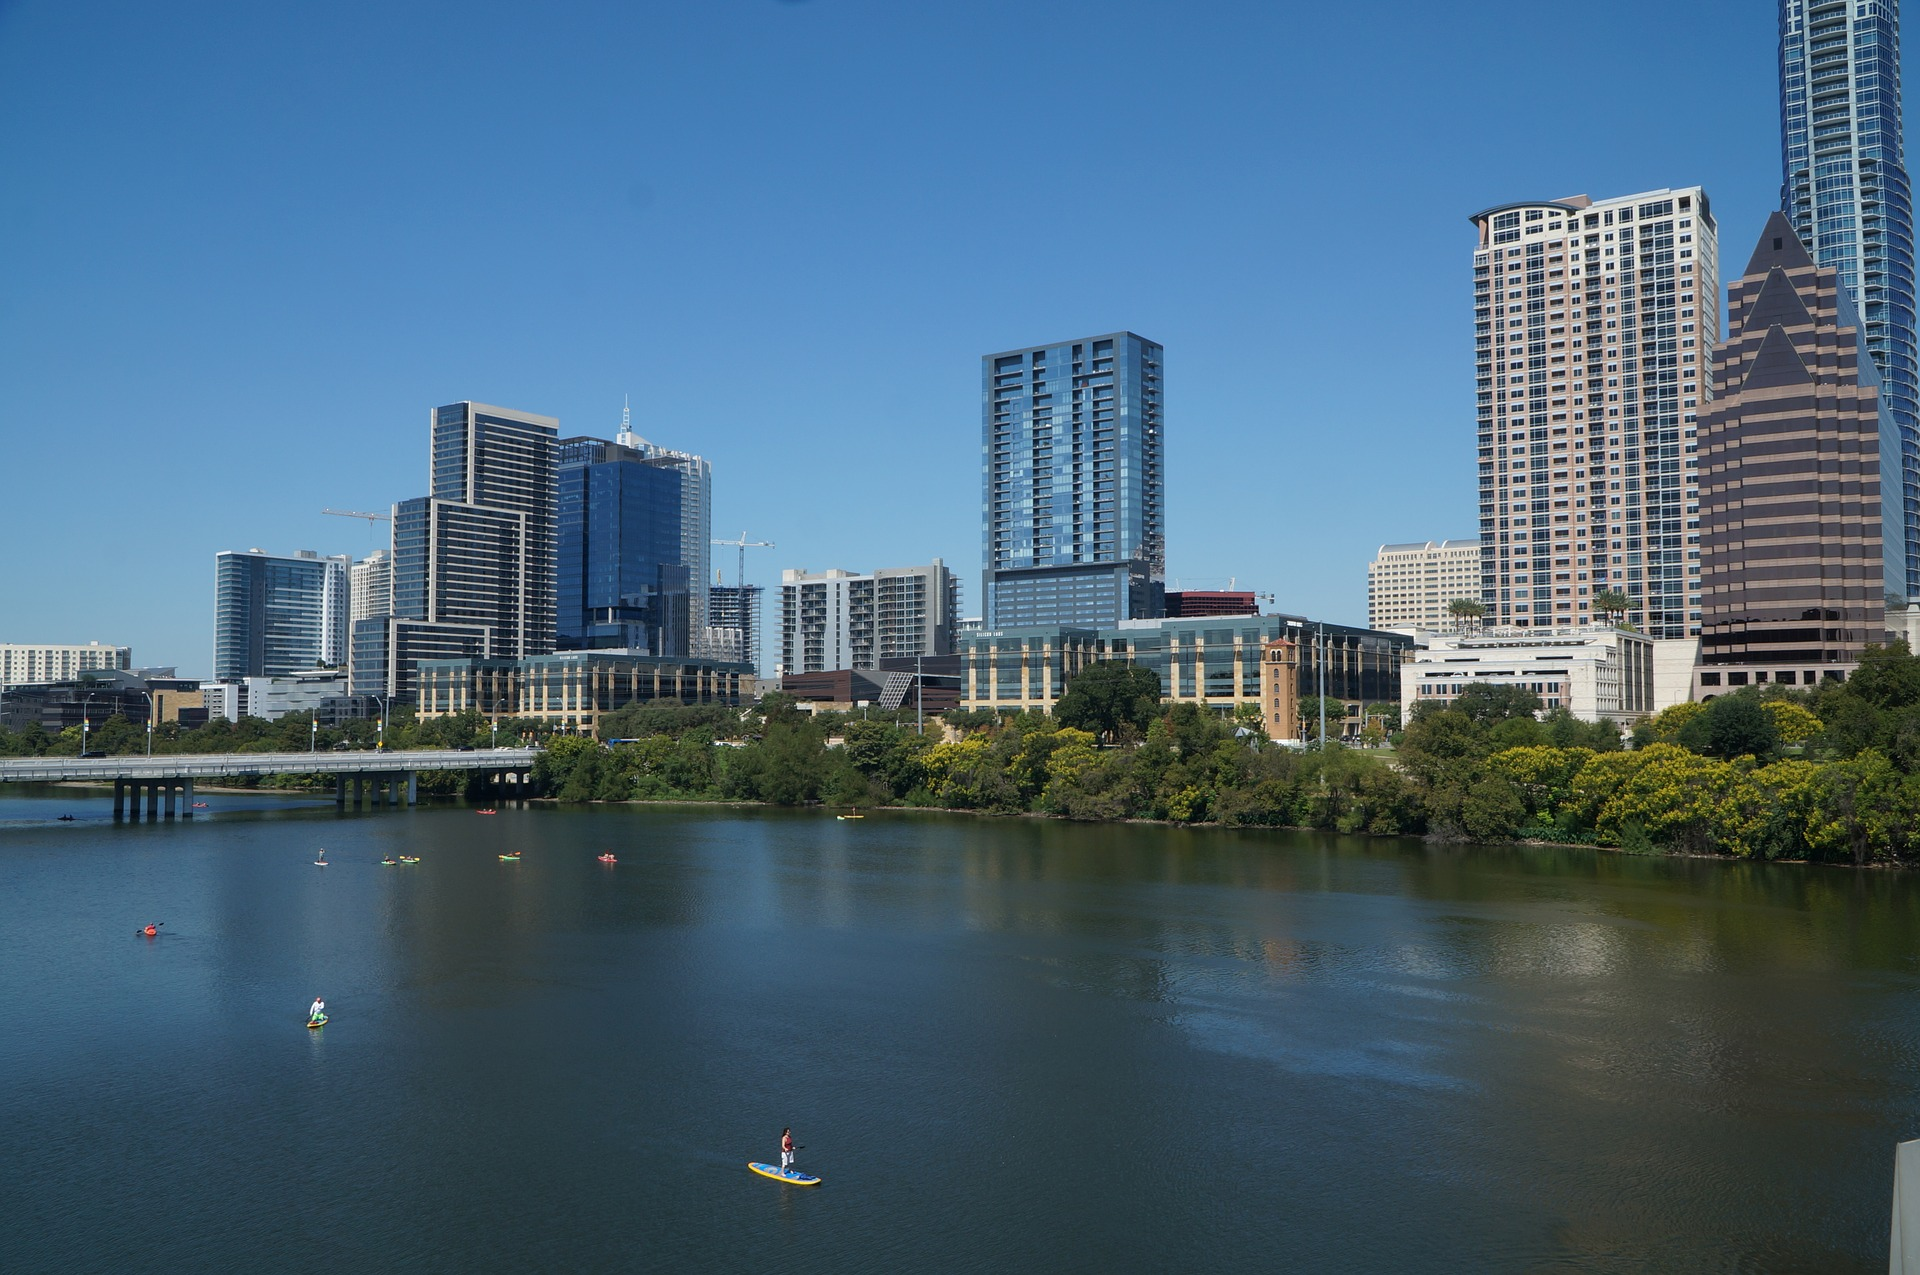 Paddleboarding on a broad river with skyline.